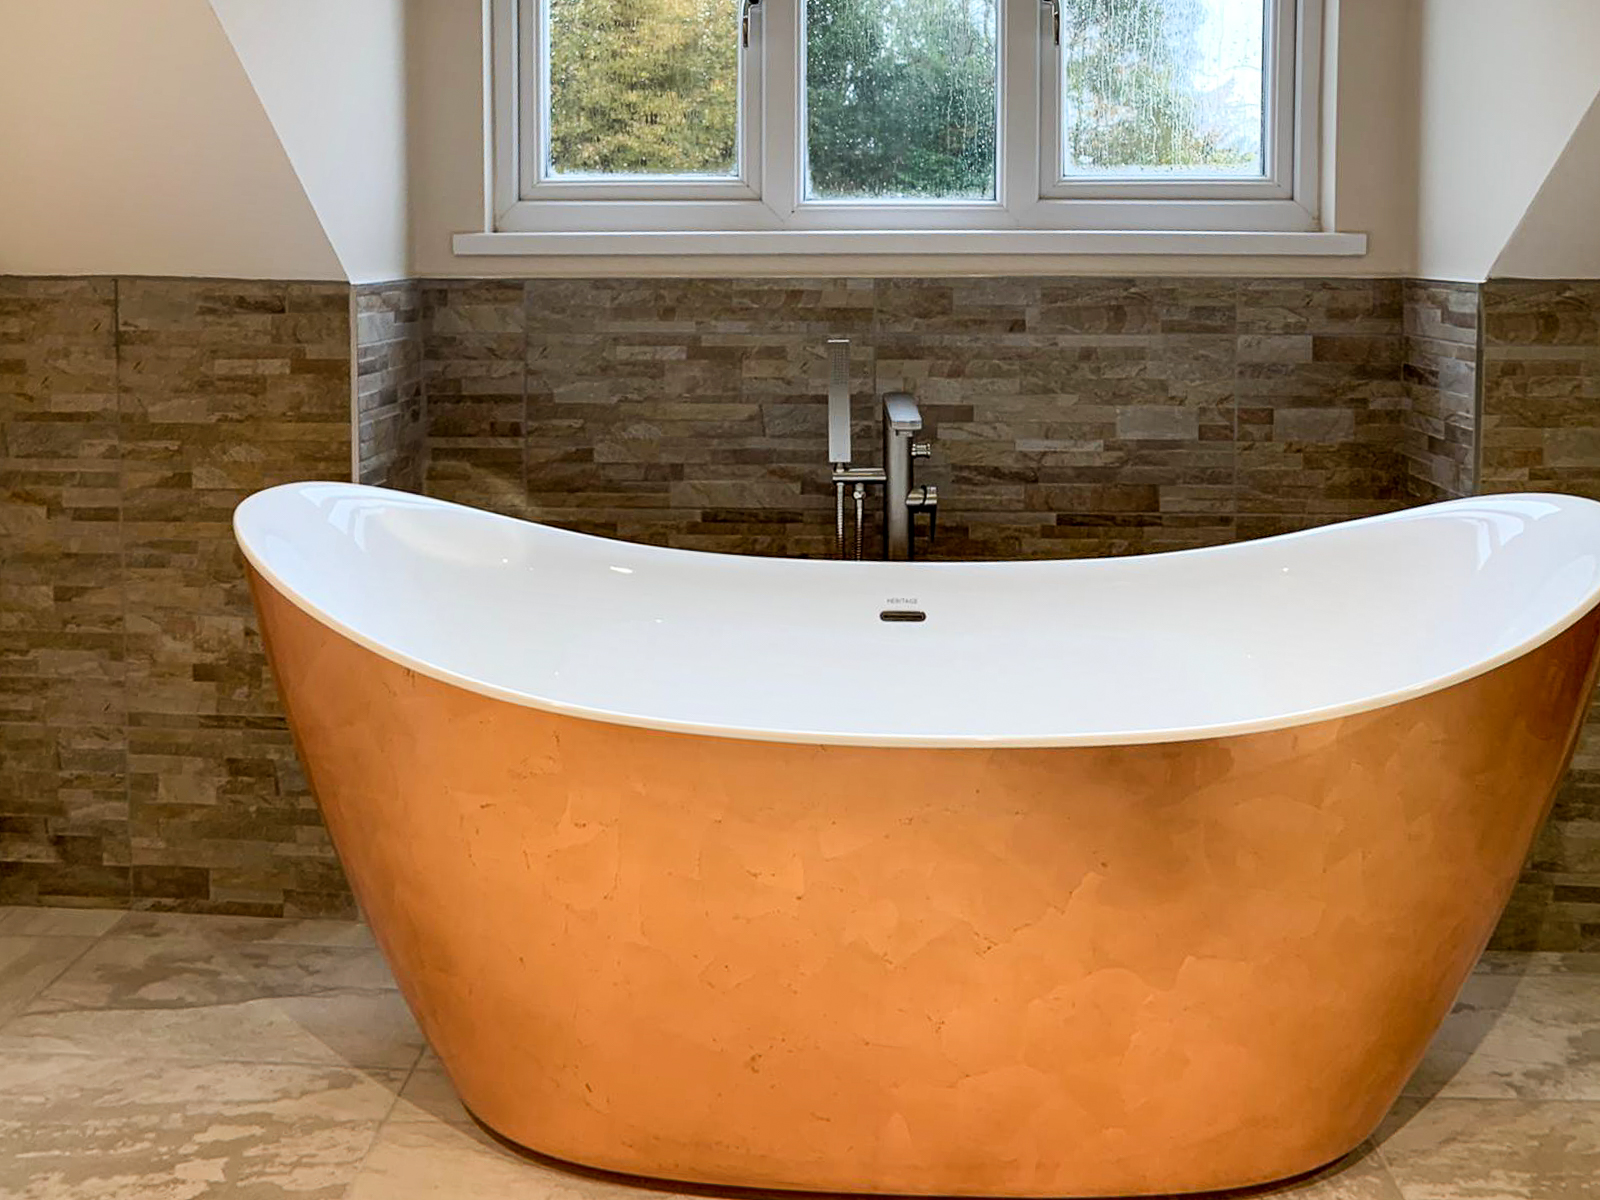 bronze bathtub inside new bathroom